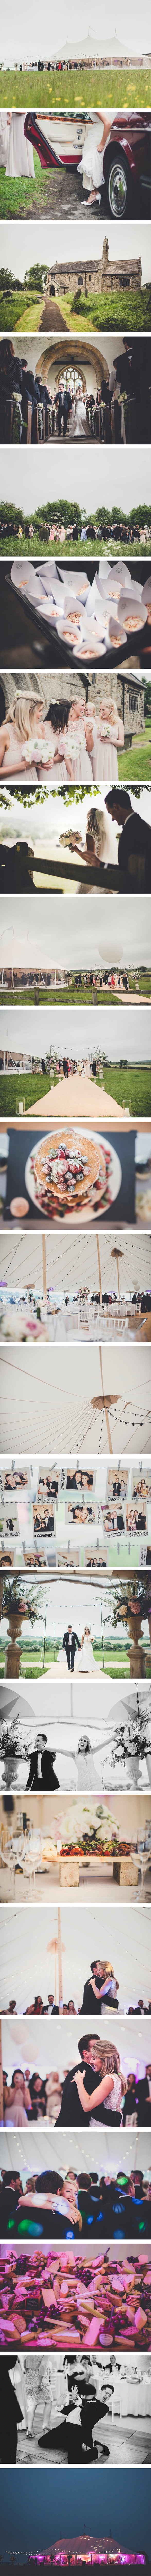 Samantha & Chris PapaKata Sperry Tent Wedding in North Yorkshire